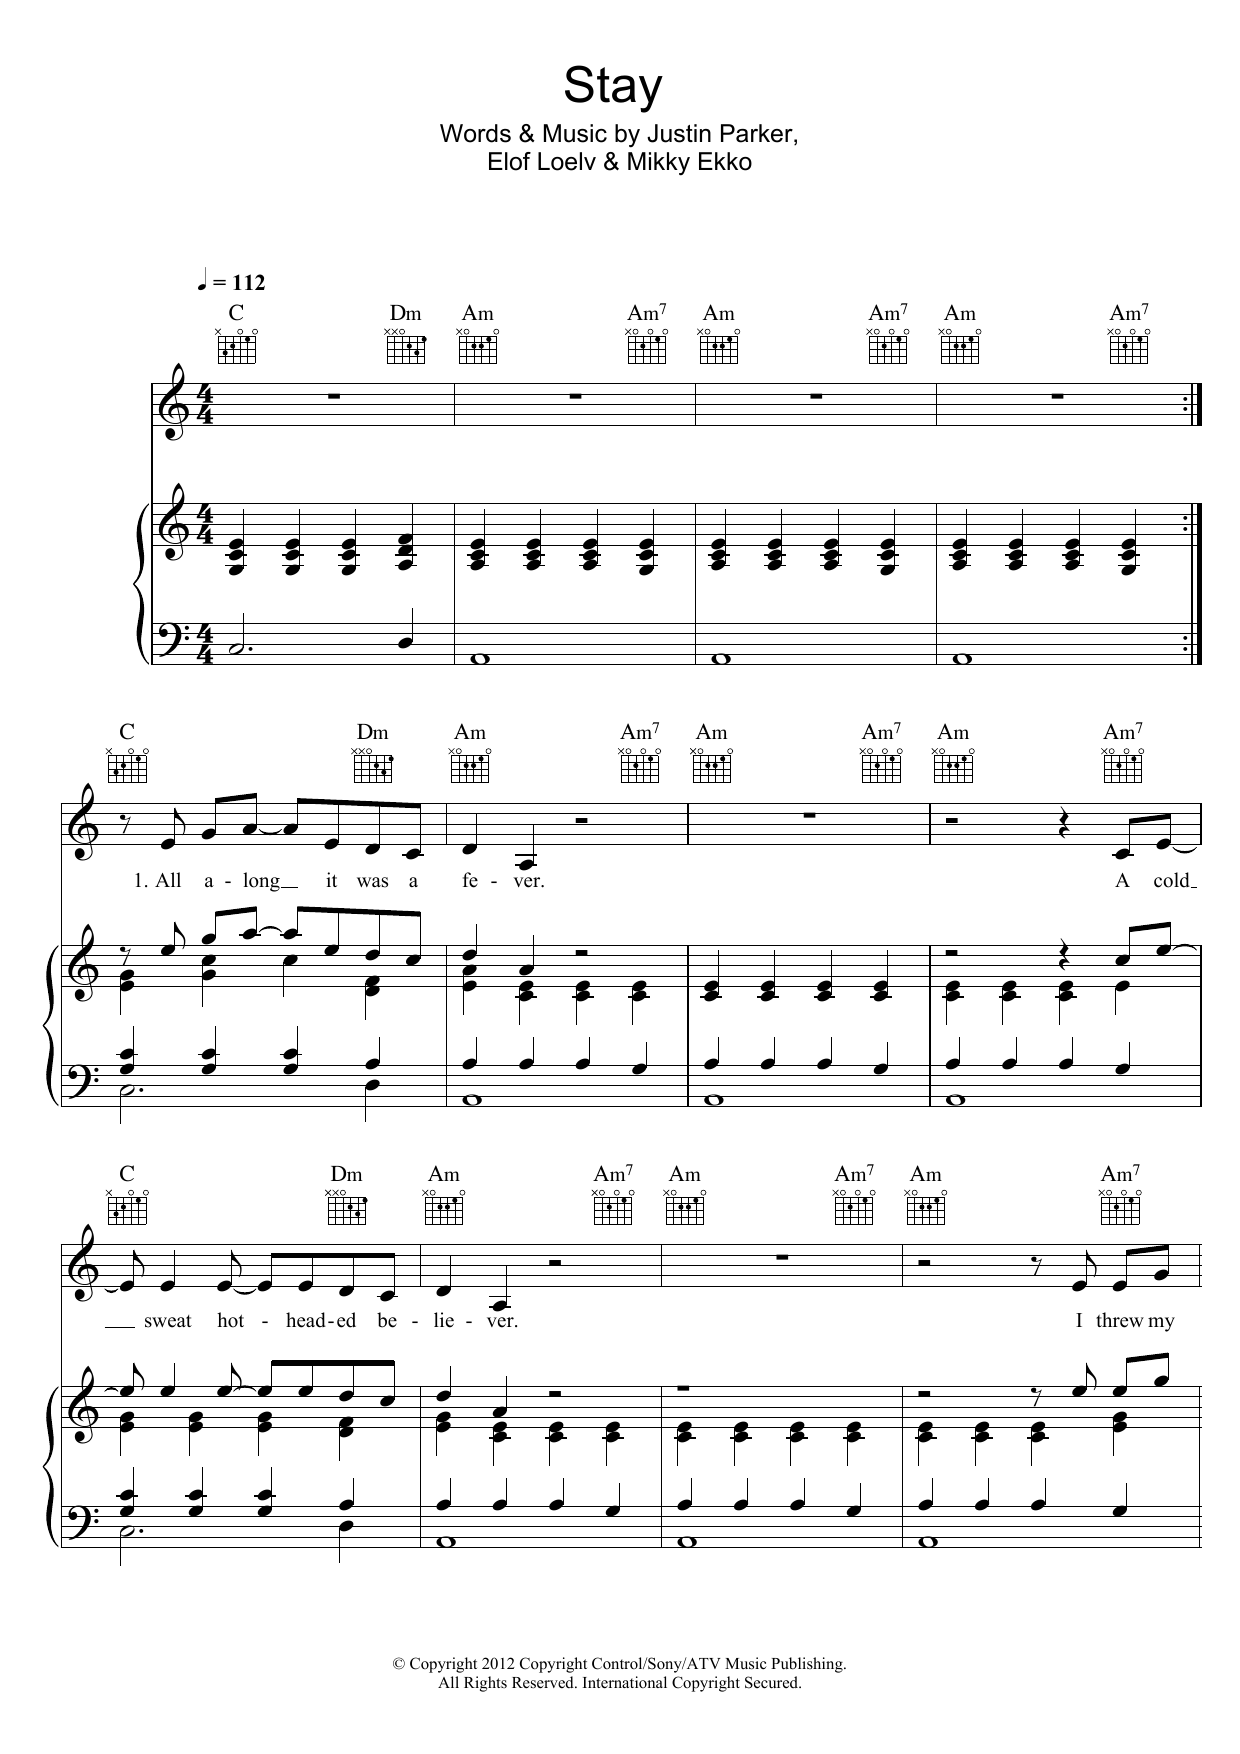 Piano piano tabs to stay by rihanna : Sheet Music Digital Files To Print - Licensed Justin Parker ...